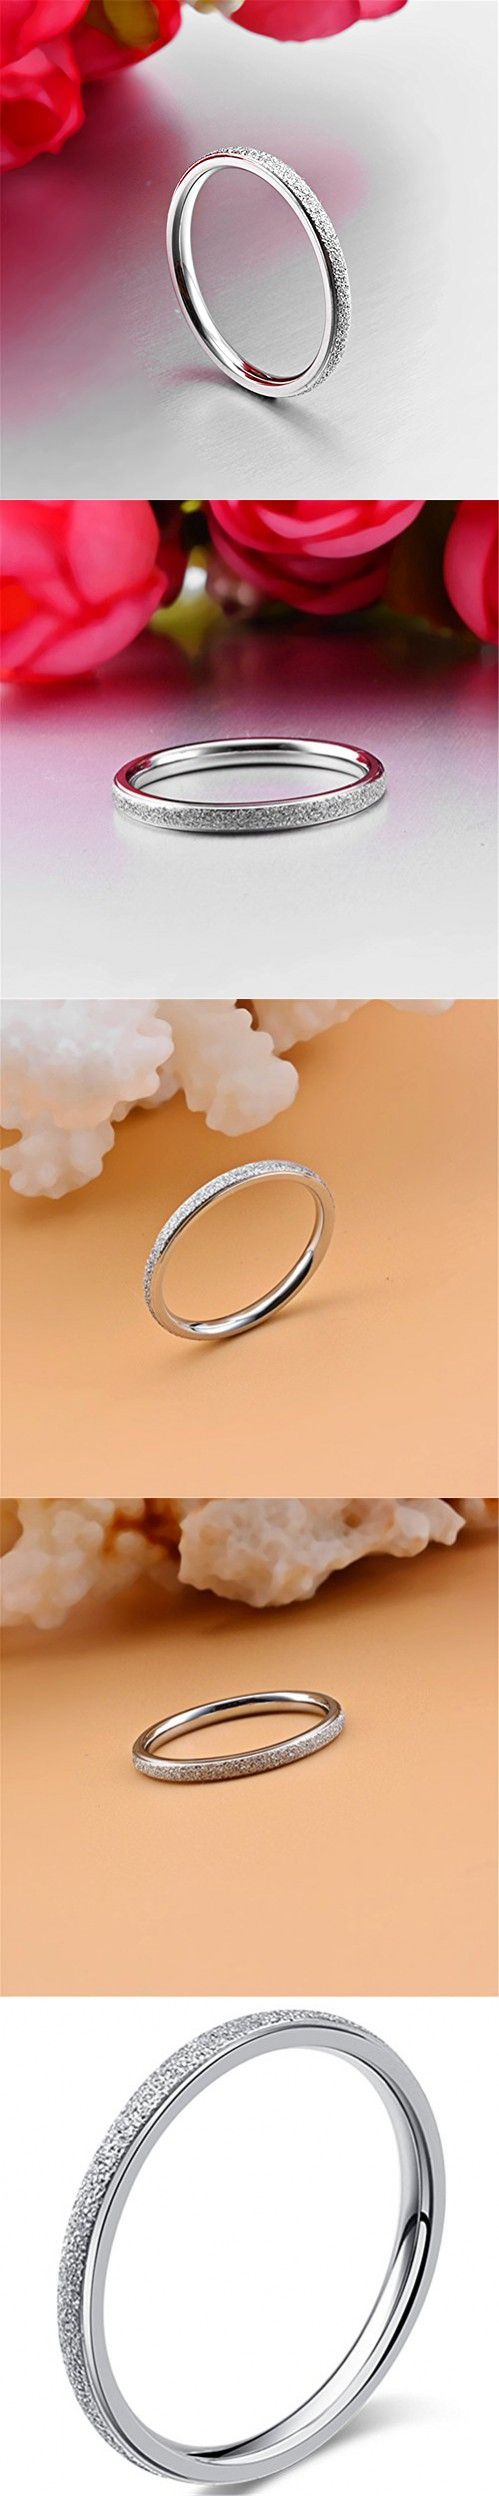 Womens 2mm Stainless Steel Sand Blast Finish Silver Wedding Band Engagement White Gold Domed Ring Size 5